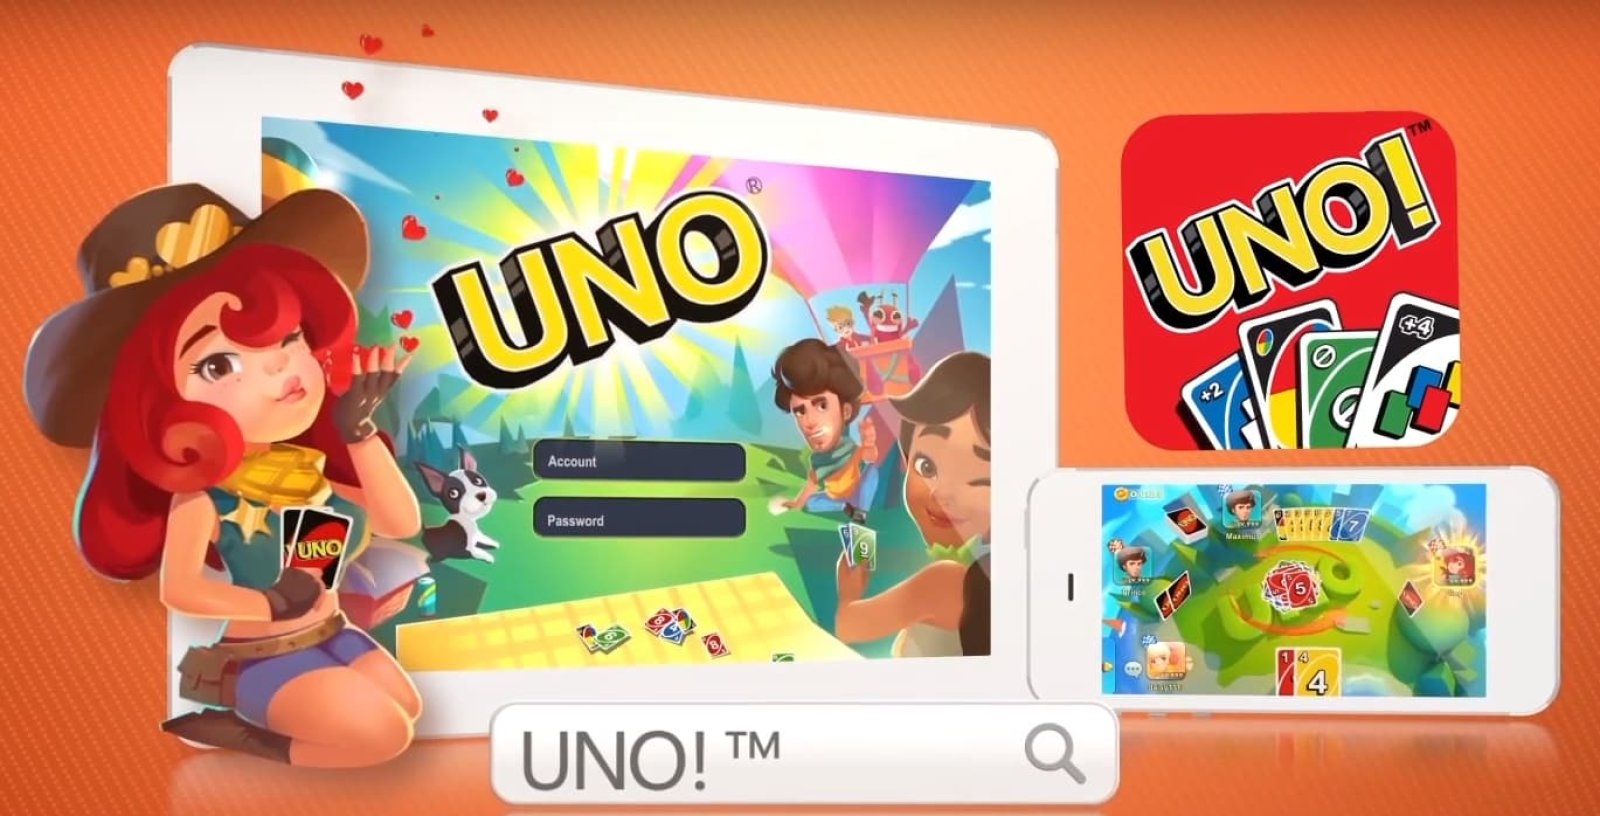 Mattel's free 'Uno' mobile game is now available worldwide | DeviceDaily.com